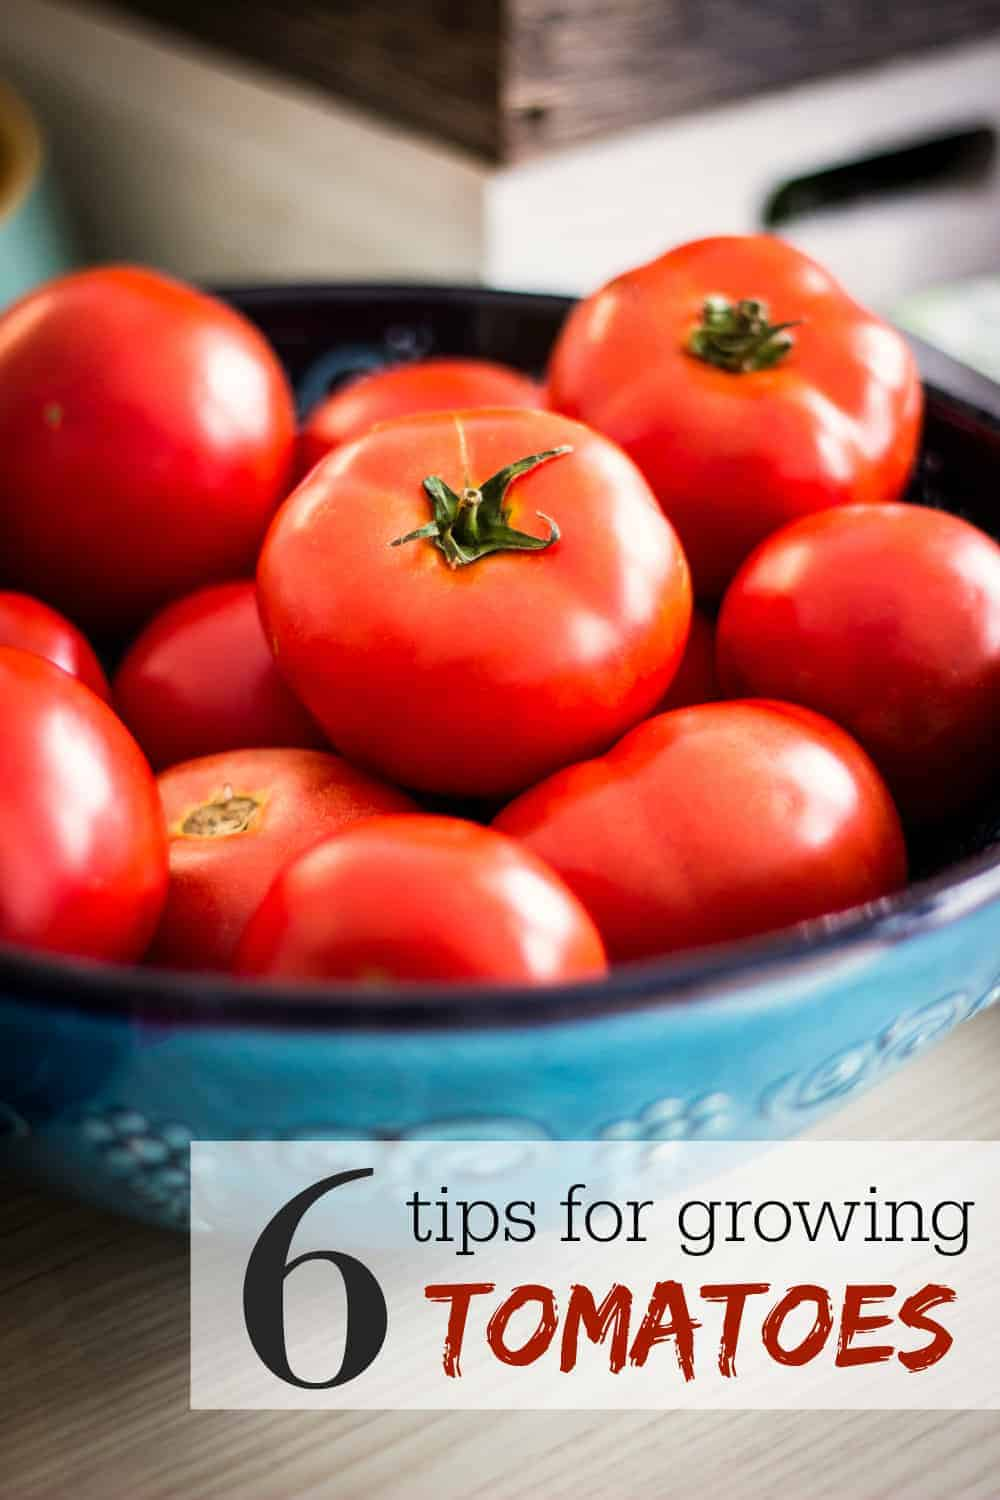 6 Tips for Growing Tomatoes